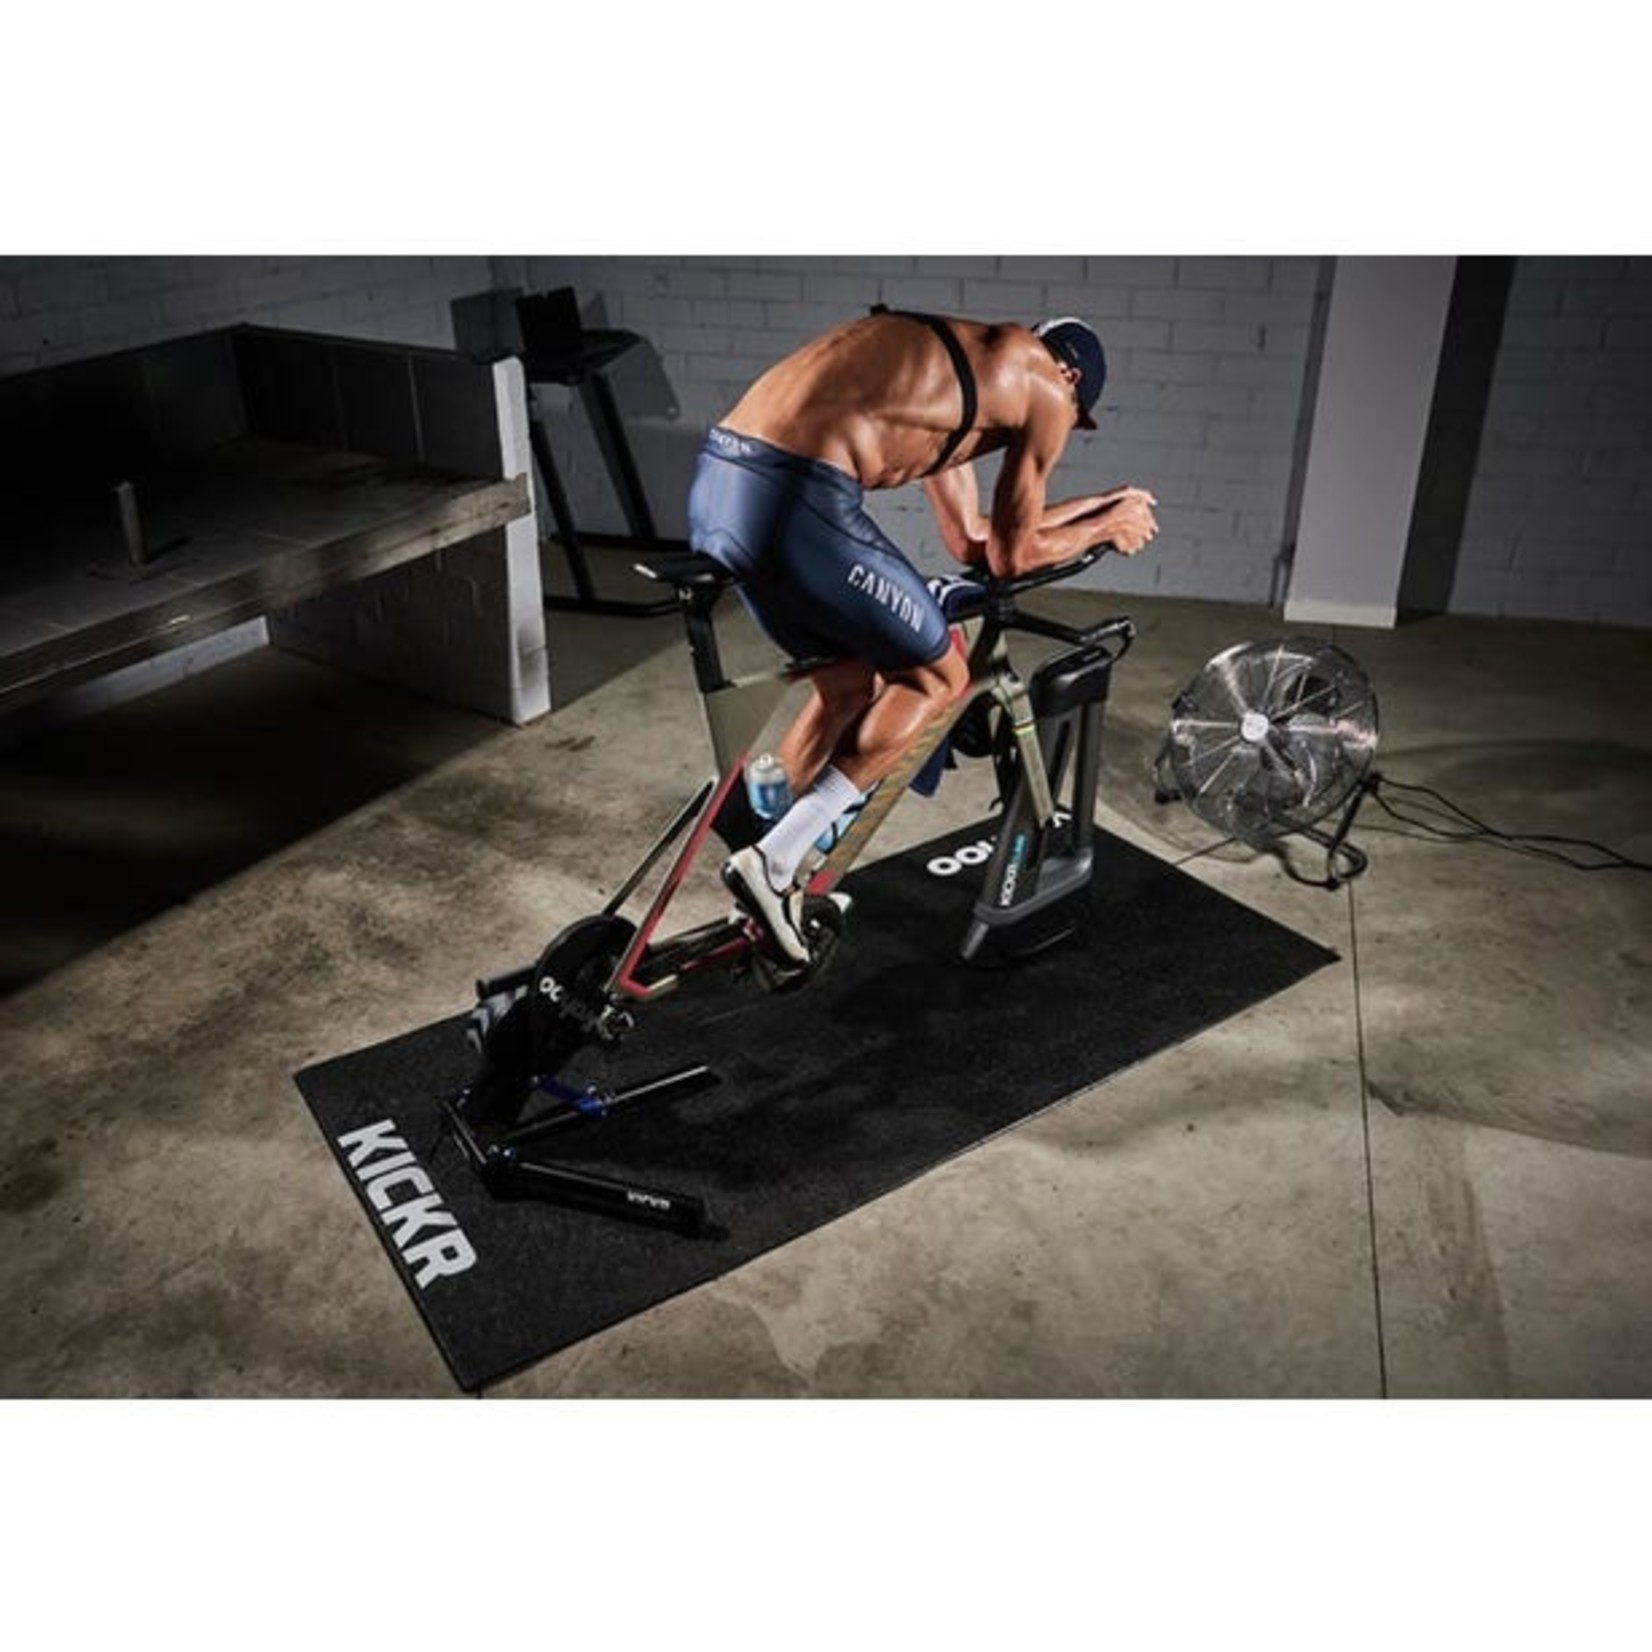 Kickr Trainer Mat